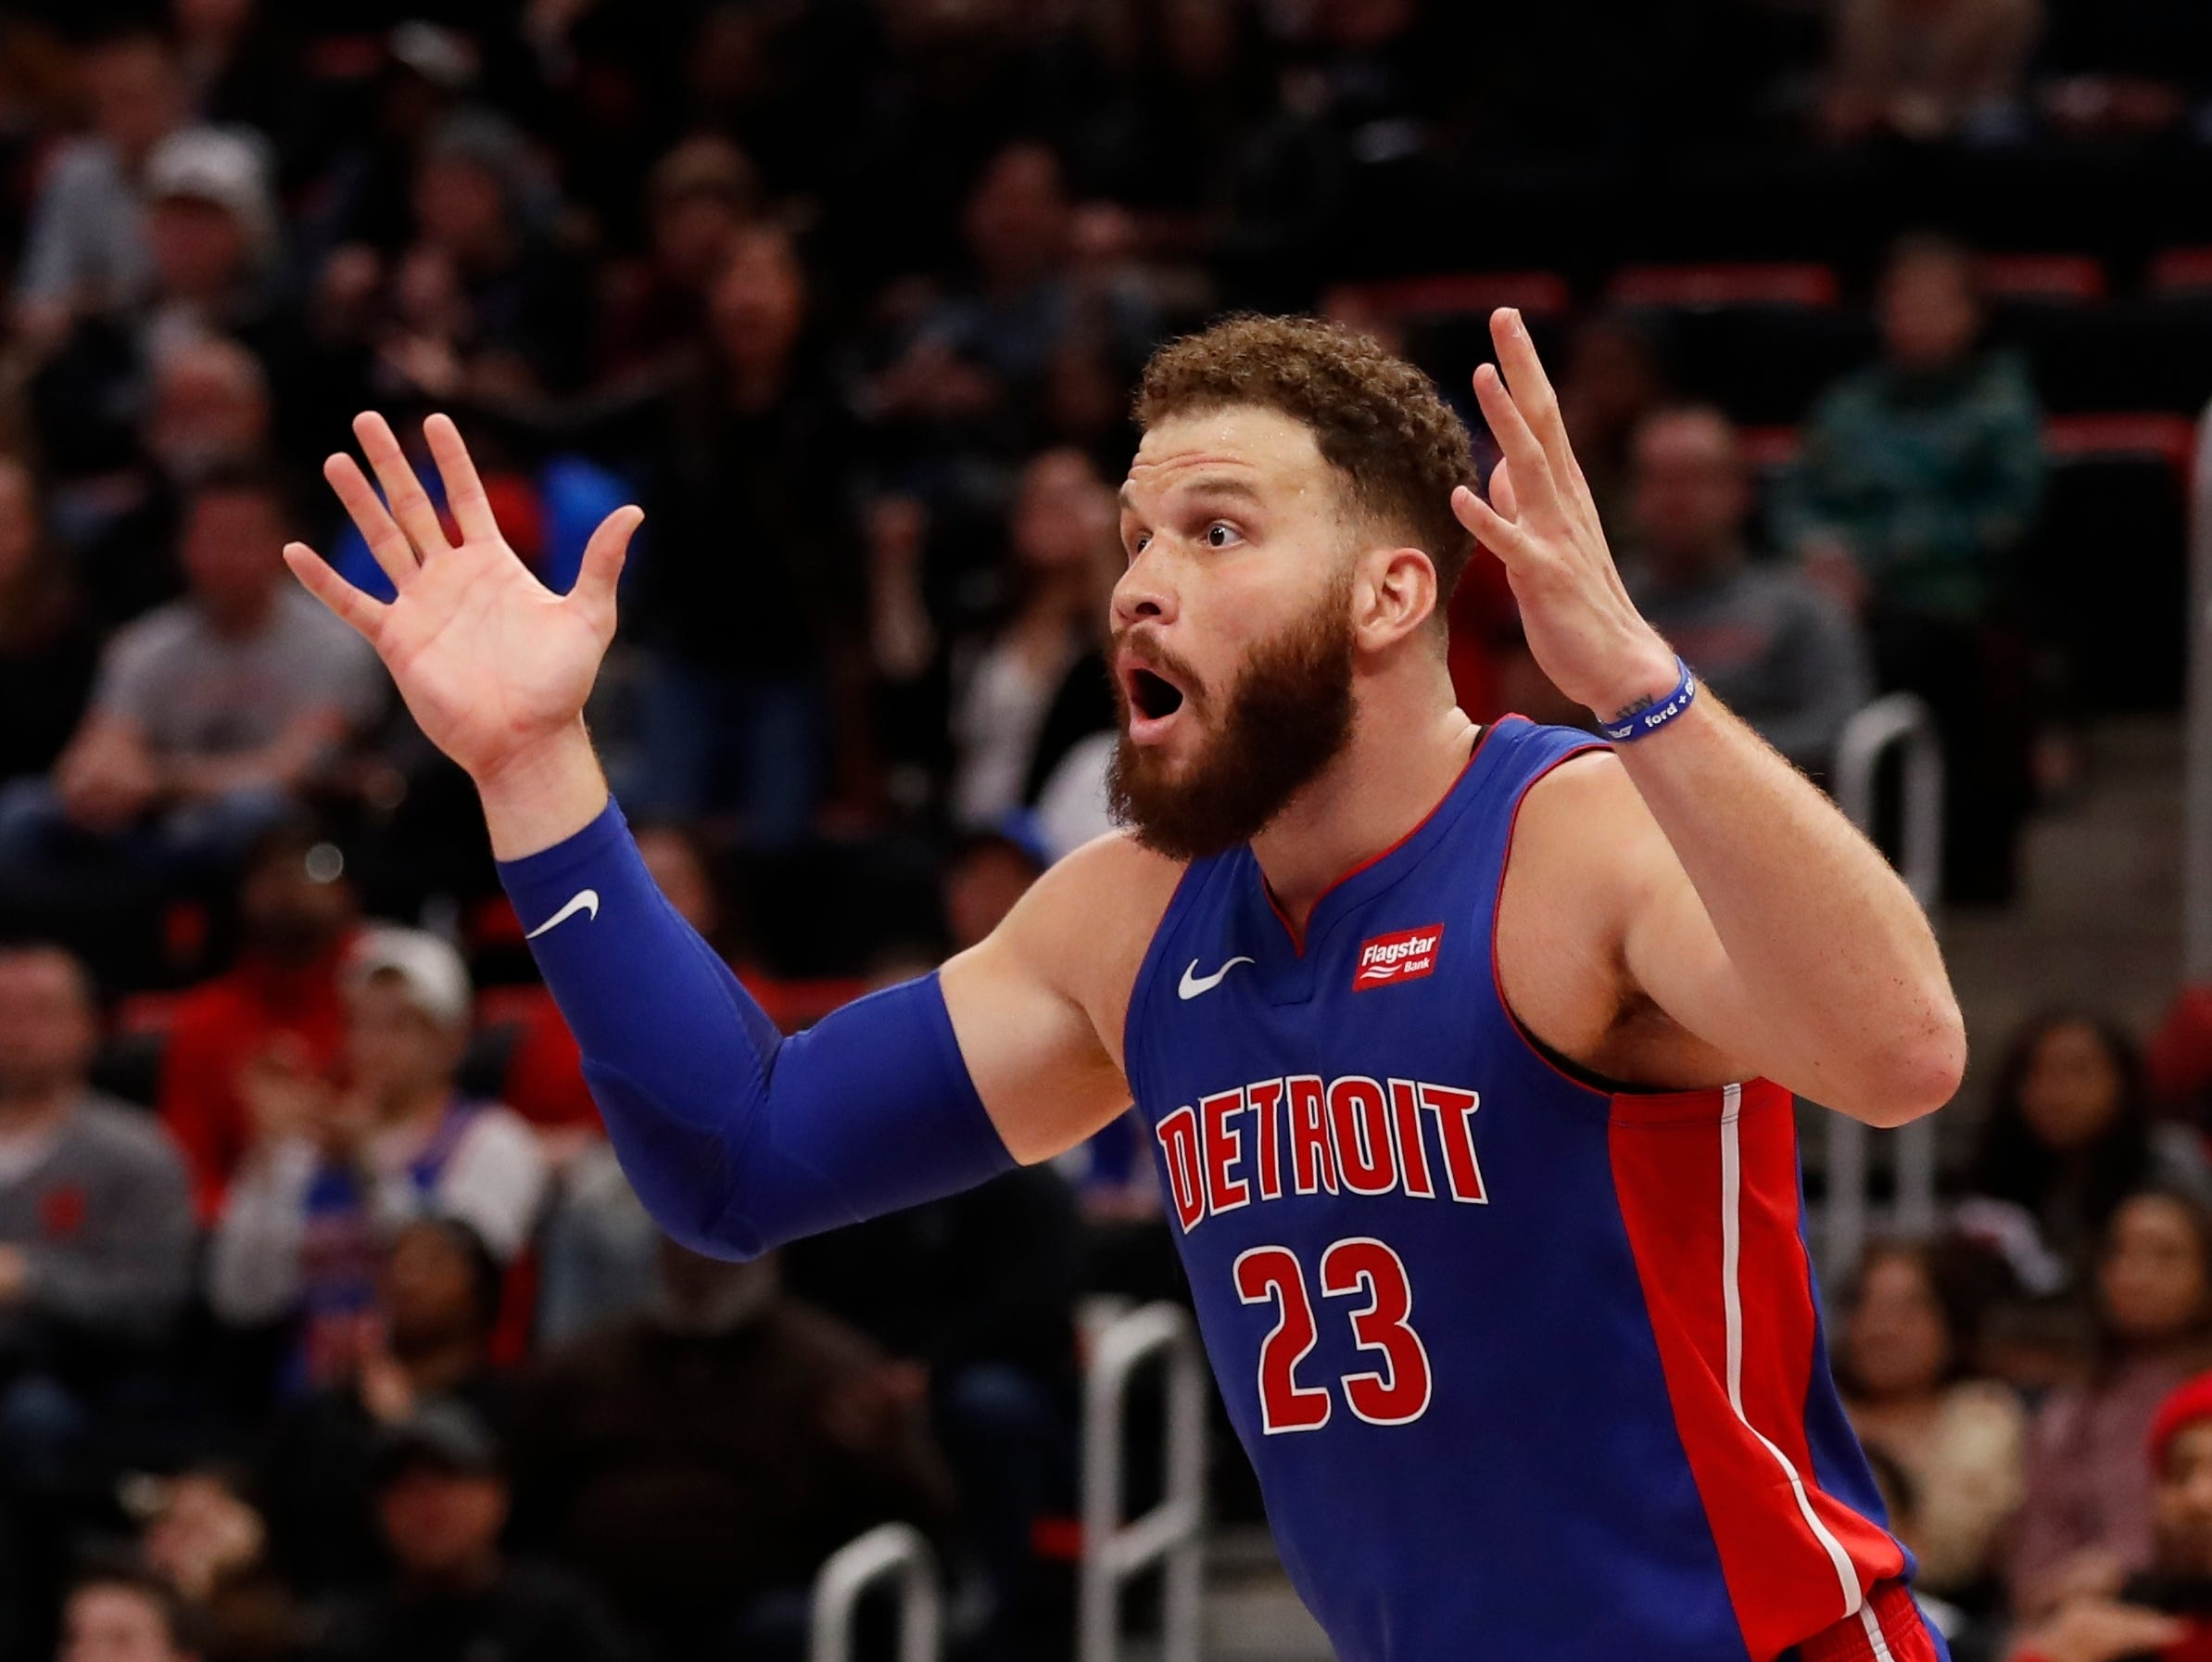 Detroit Pistons forward Blake Griffin reacts after a call during the second half.